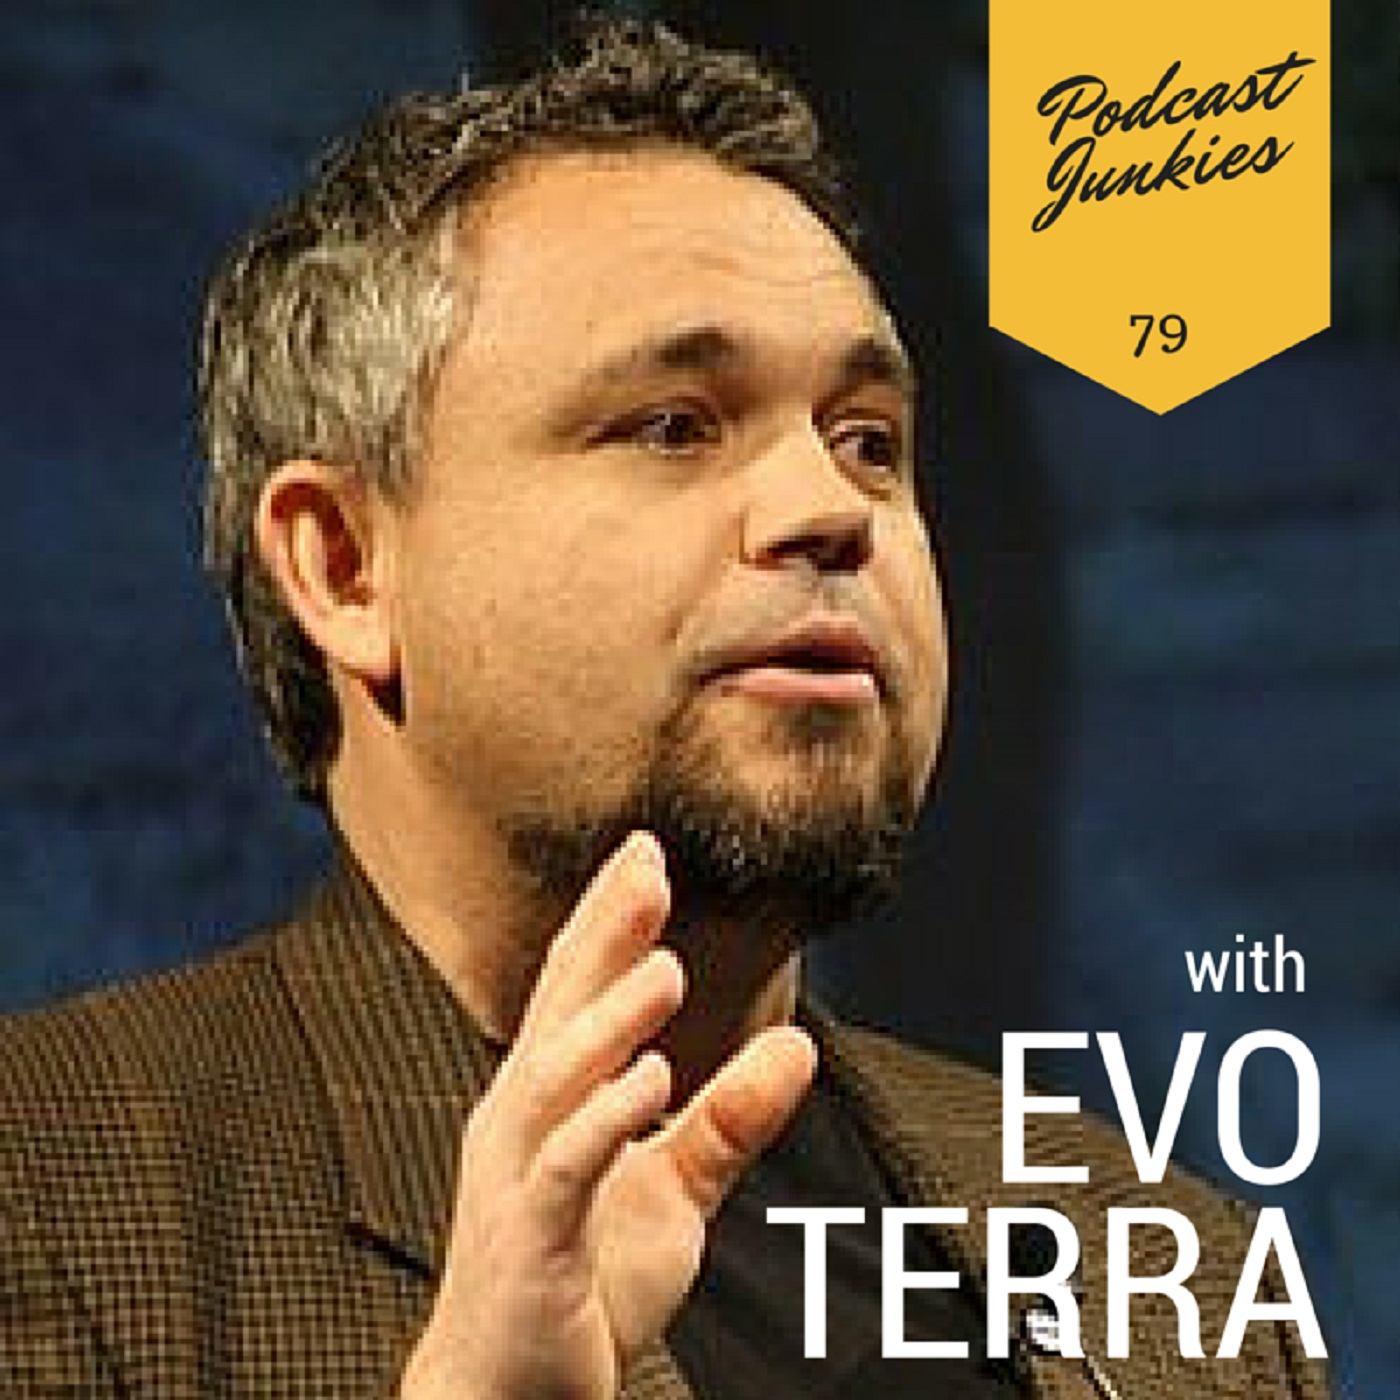 079 Evo Terra | Traveling the World While Podcasting